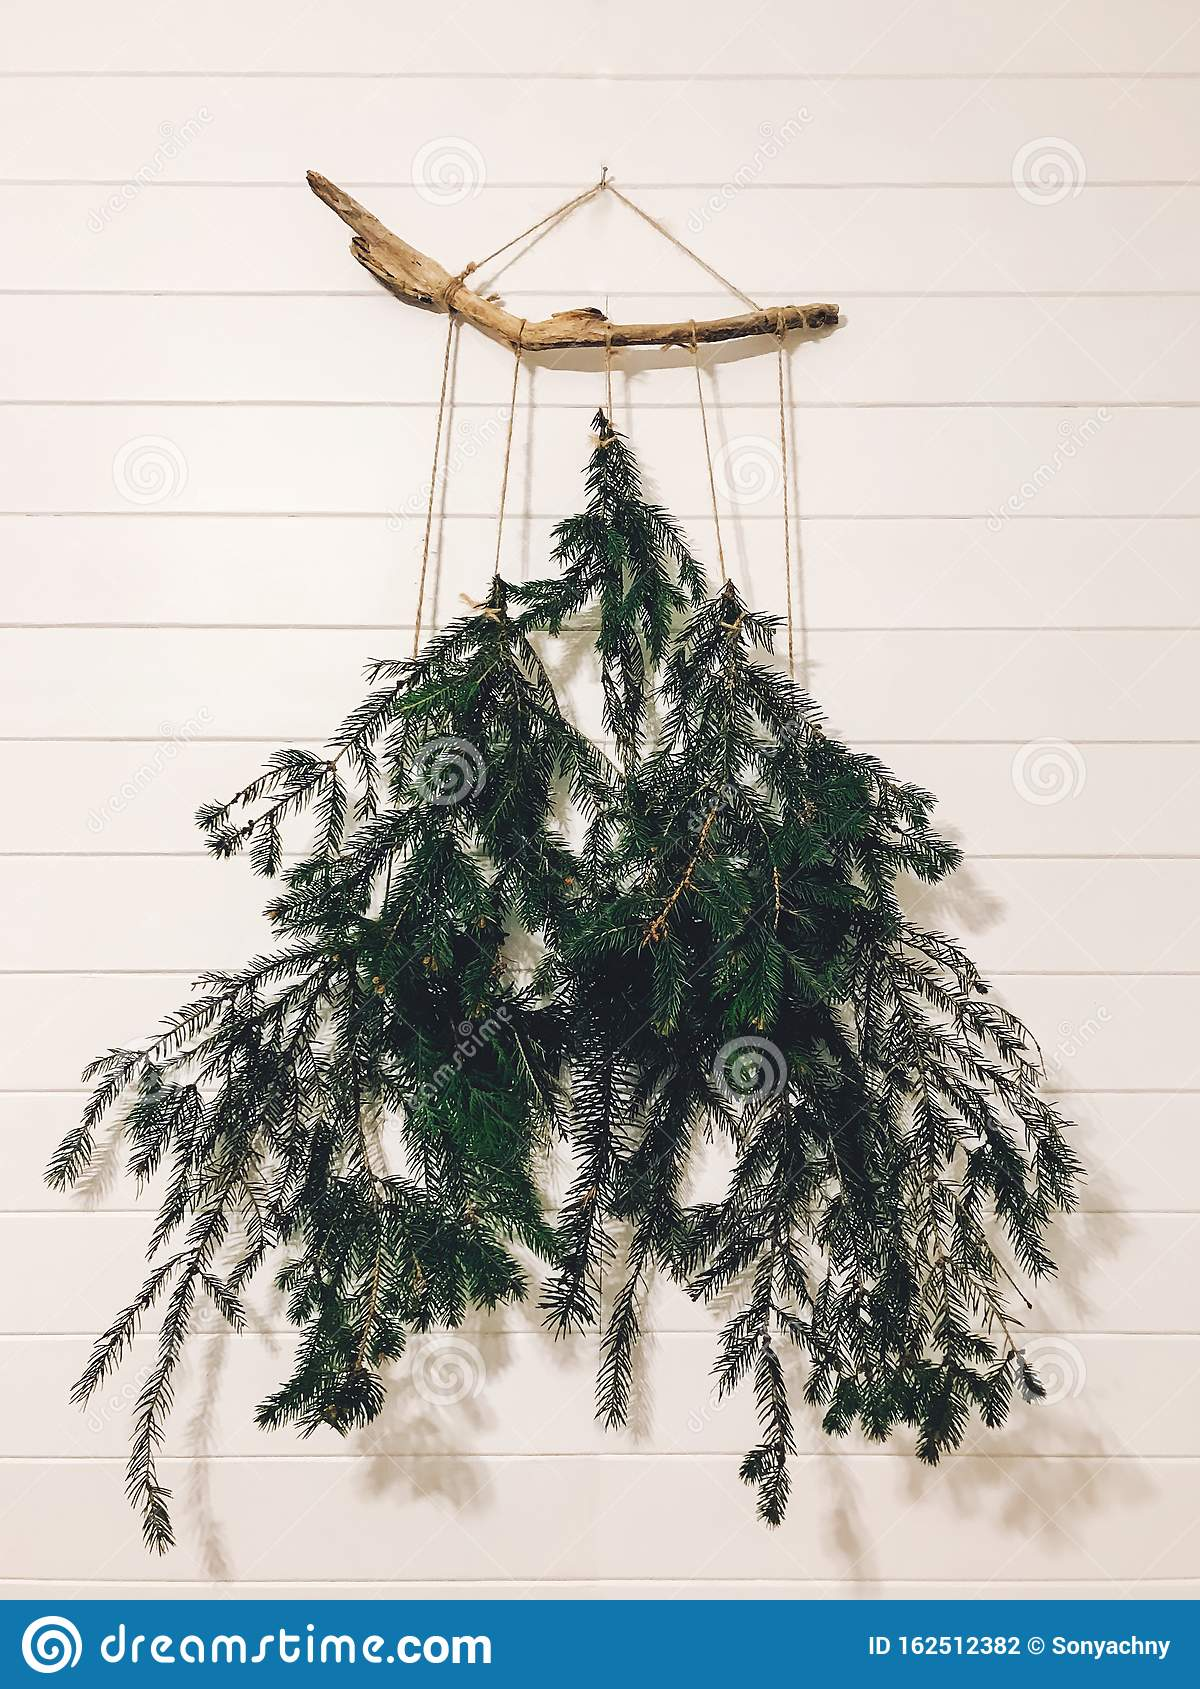 Stylish Alternative Christmas Tree On White Wall Modern Eco Christmas Tree Made Of Pine Branches Hanging On White Rural Wall In Stock Photo Image Of Card Abstract 162512382